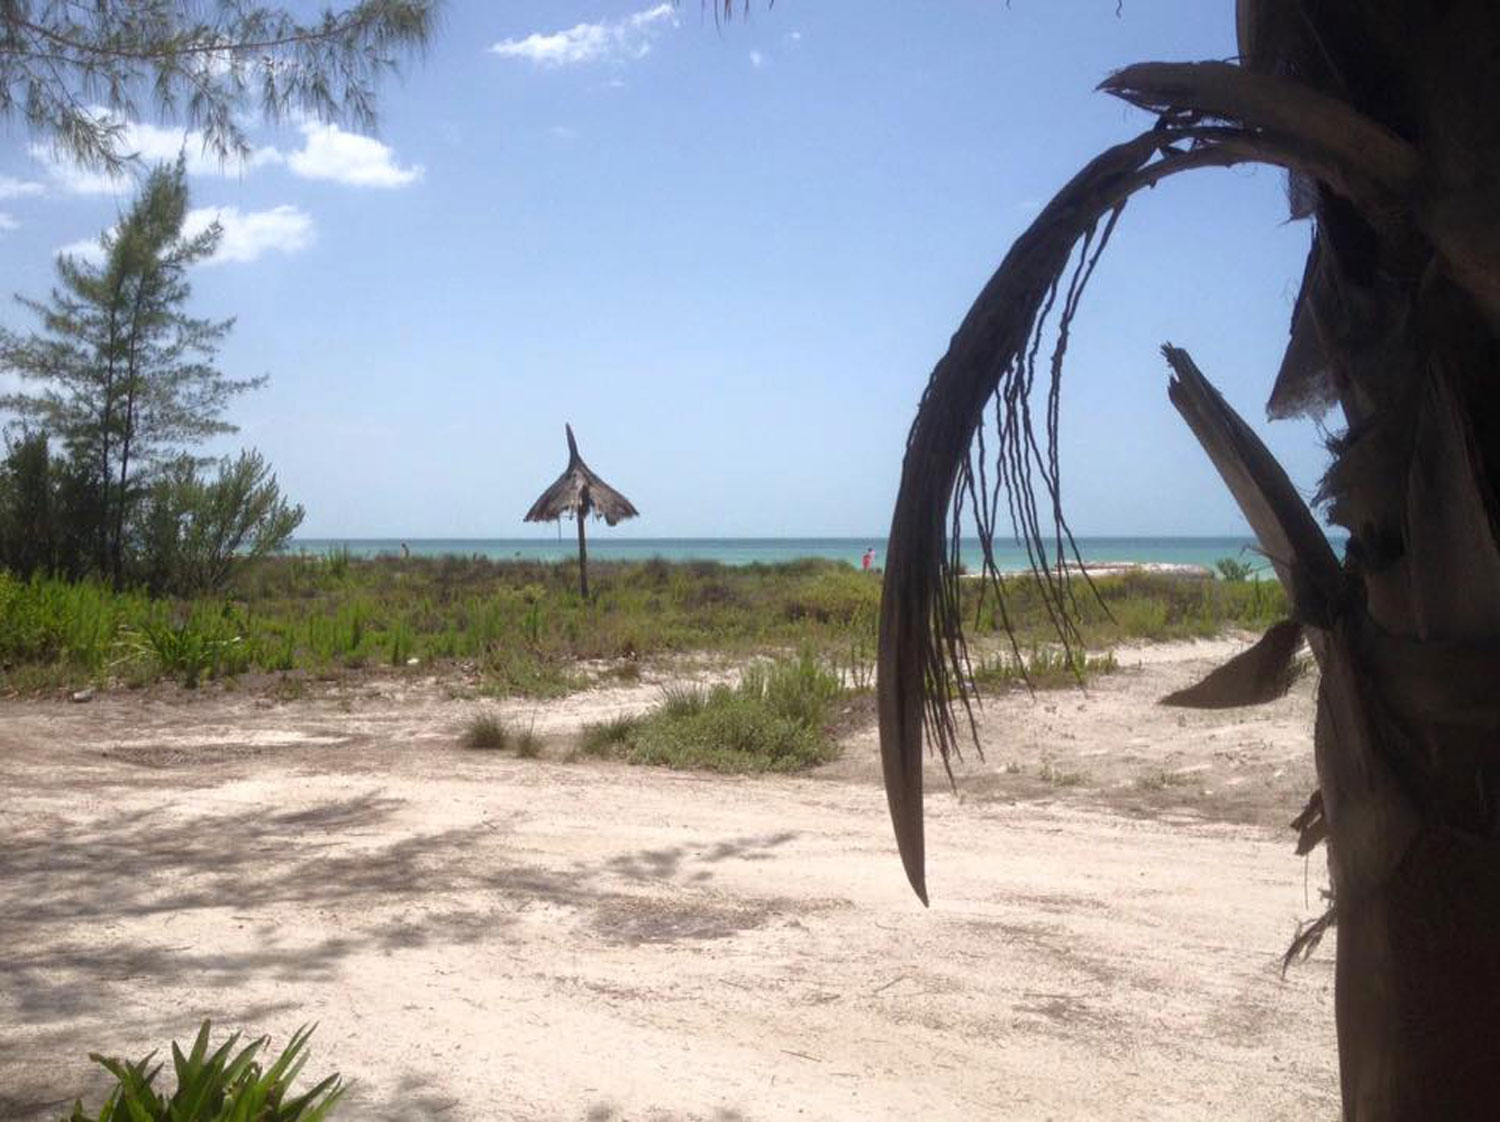 Hammocks_and_Ruins_Riviera_Maya_What_to_Do_Cancun_Playa_Del_Carmen_Islands_Isla_Holbox_36.jpg